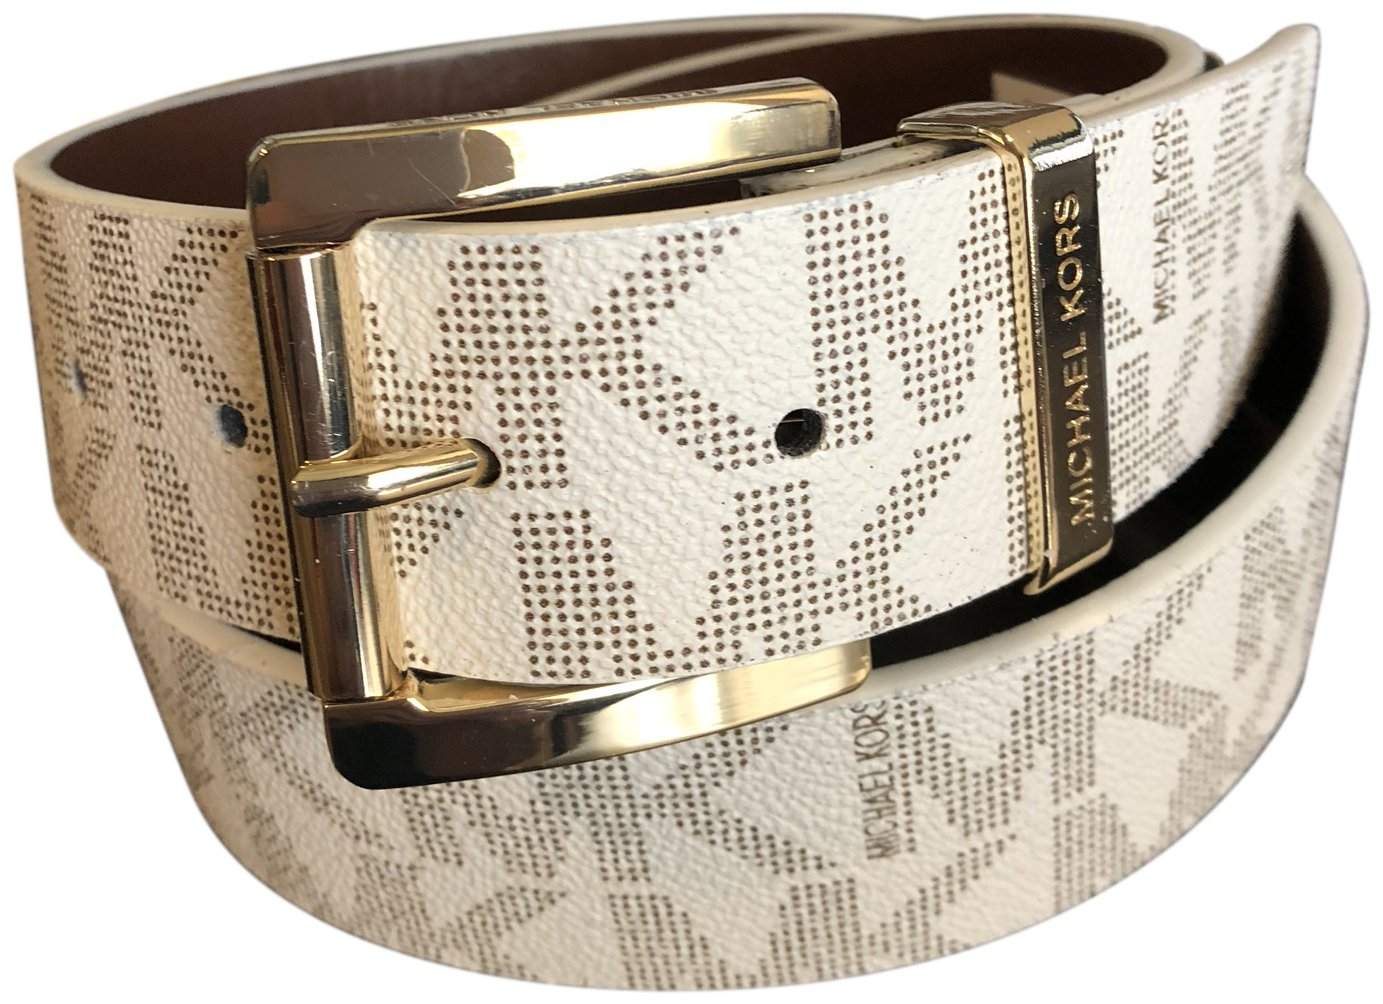 9ac350a32904 ... italy amazon michael kors mk signature monogram logo gold buckle belt  vanilla white brown size small